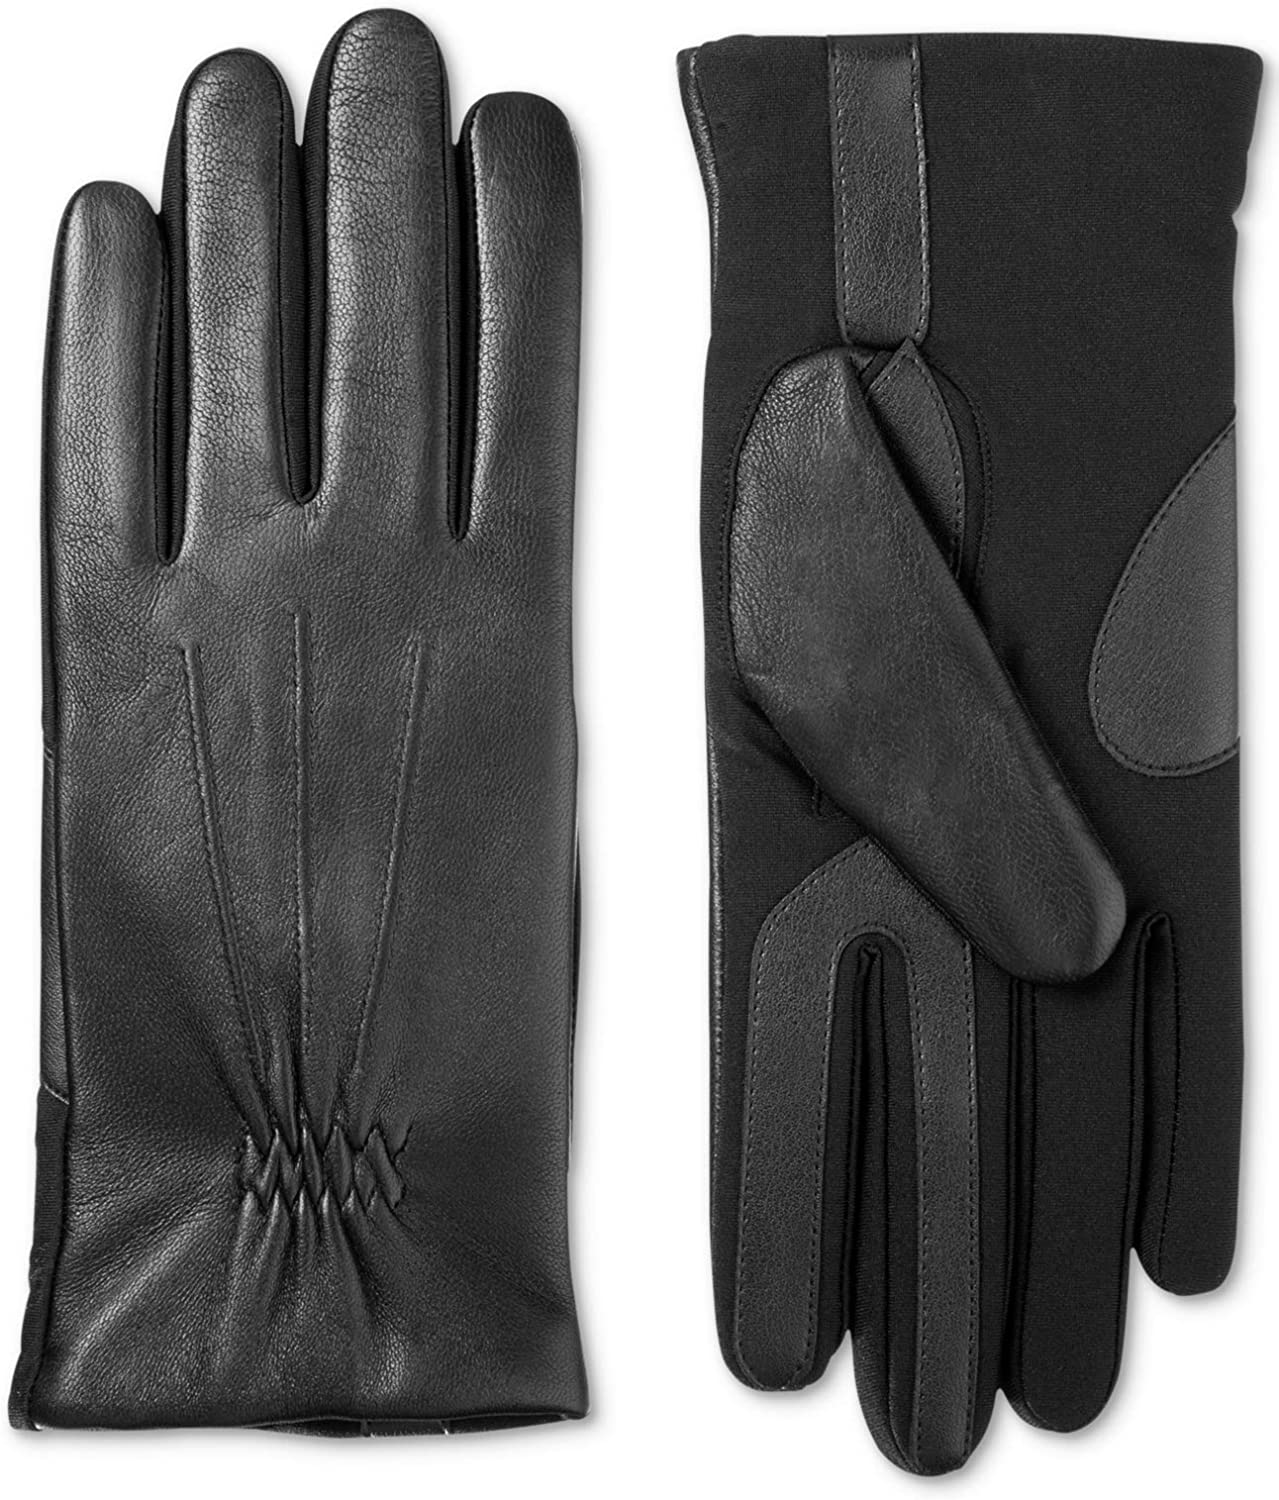 Isotoner Women's Stretch Leather Touchscreen Gloves with SleekHeat Black